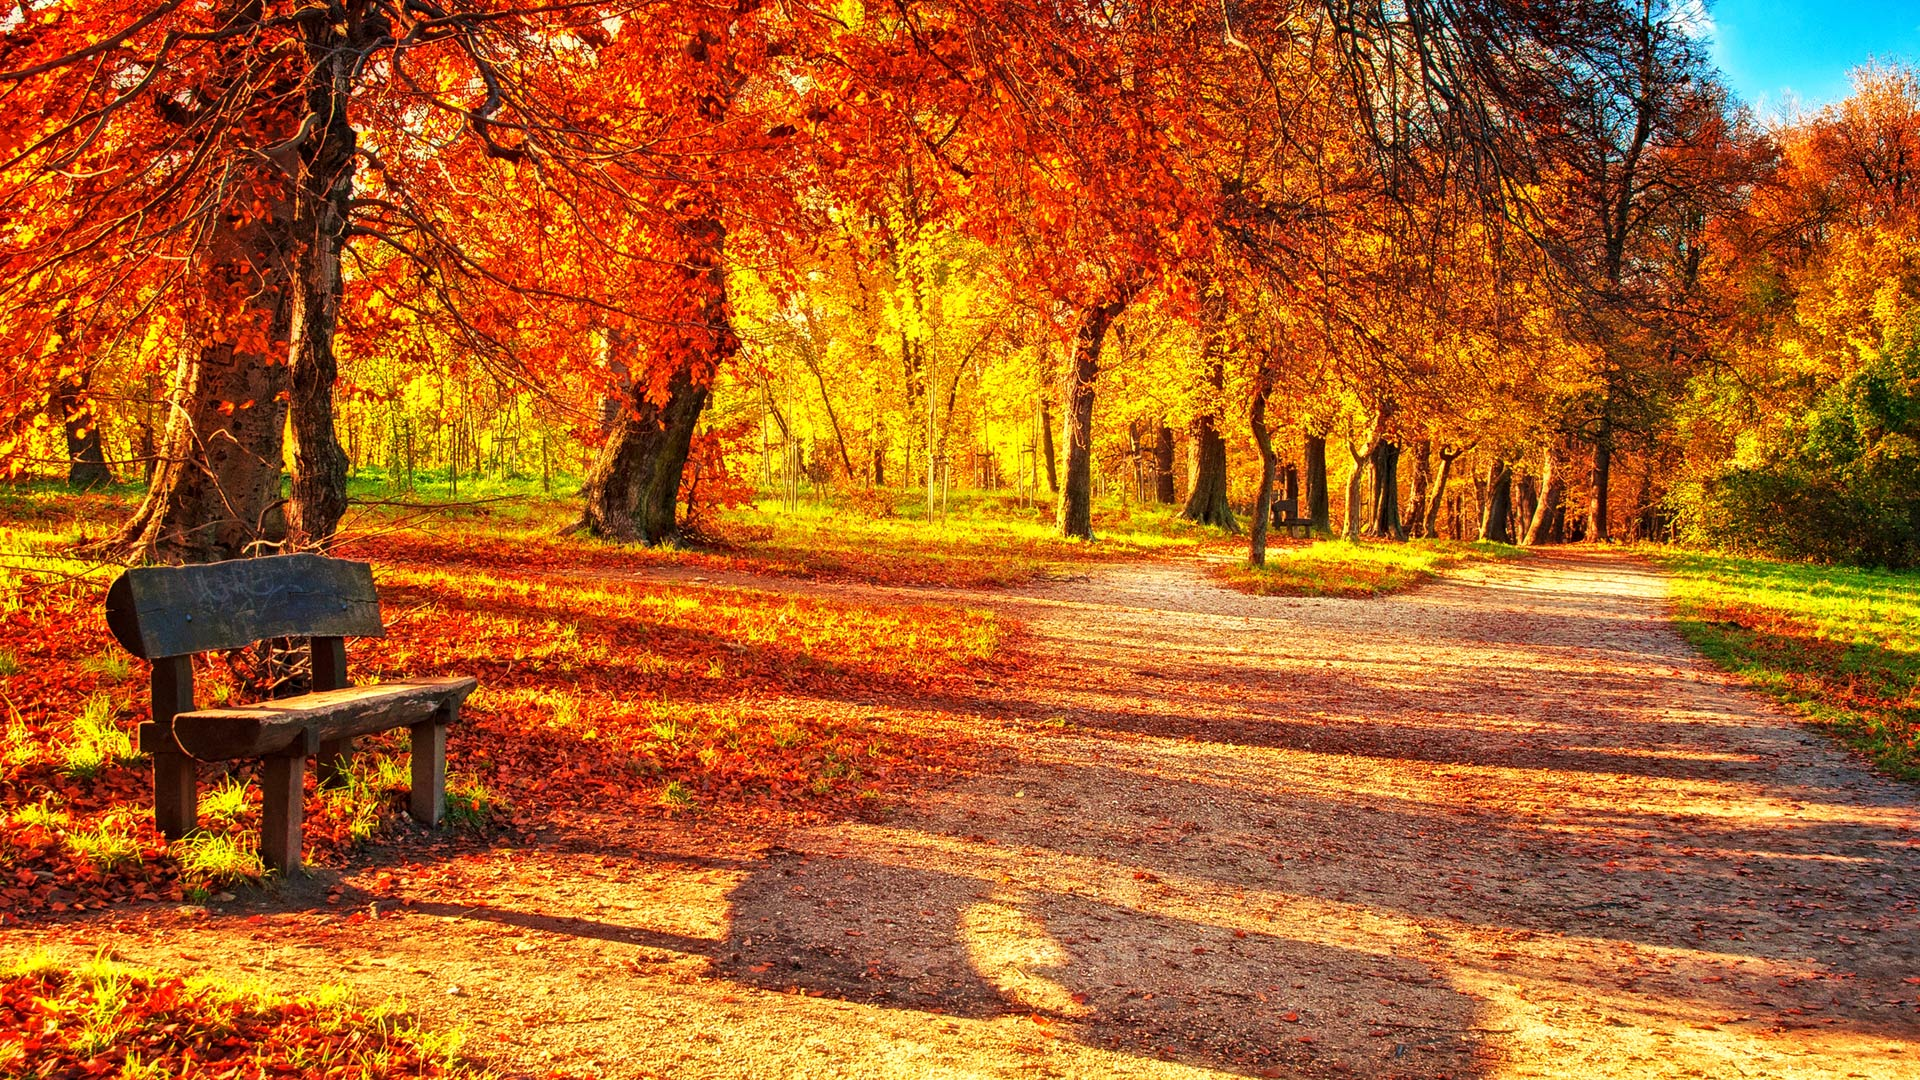 Fall In Love Wallpaper In Hd : cute Autumn Leaves HD Wallpapers.